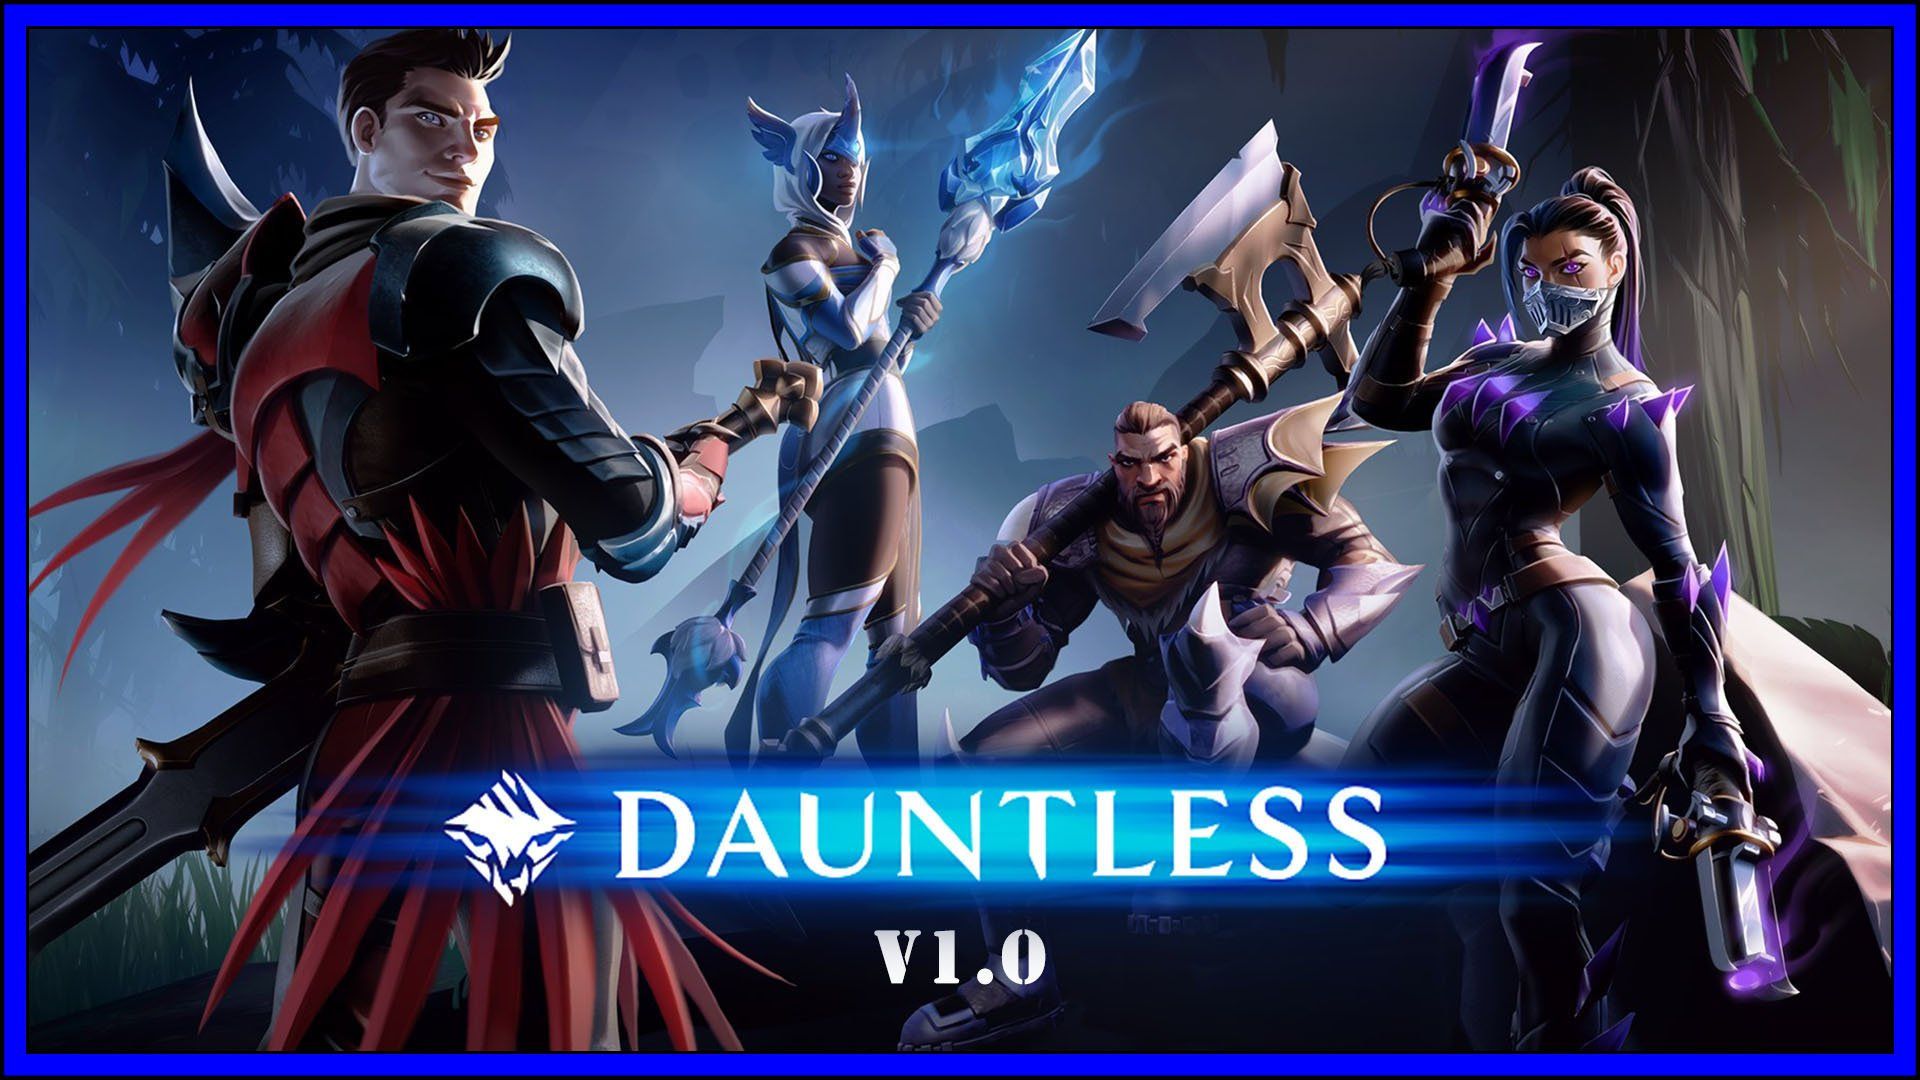 Dauntless – Aether Unbound (v1.0) (PS4) Review